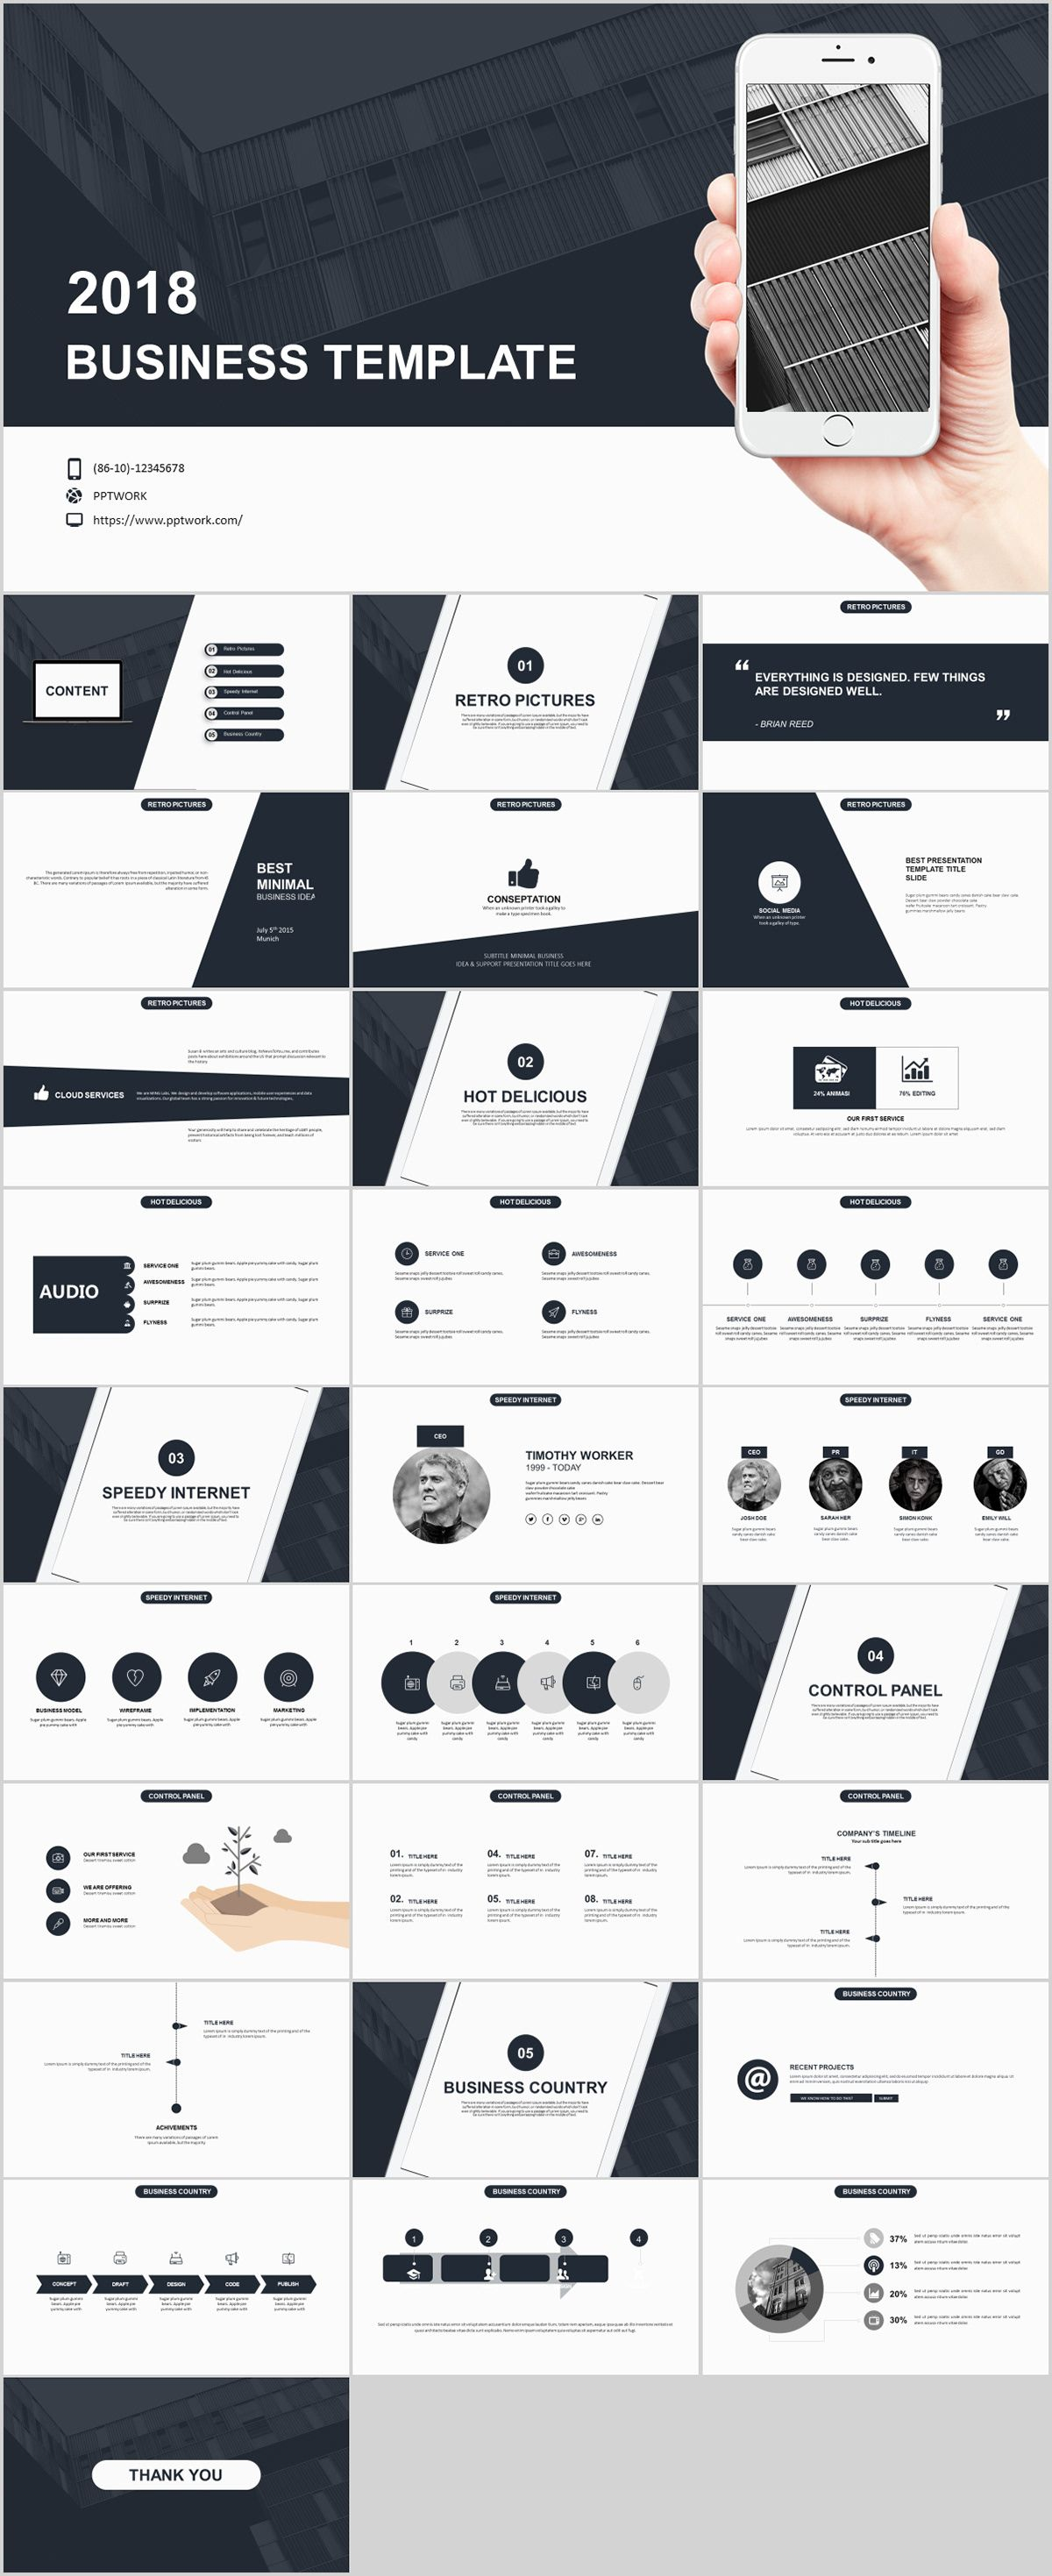 29 black business plan presentation powerpoint templat on behance 29 black business plan presentation powerpoint templat on behance powerpoint templates presentation animation backgrounds pptwork annual report cheaphphosting Gallery